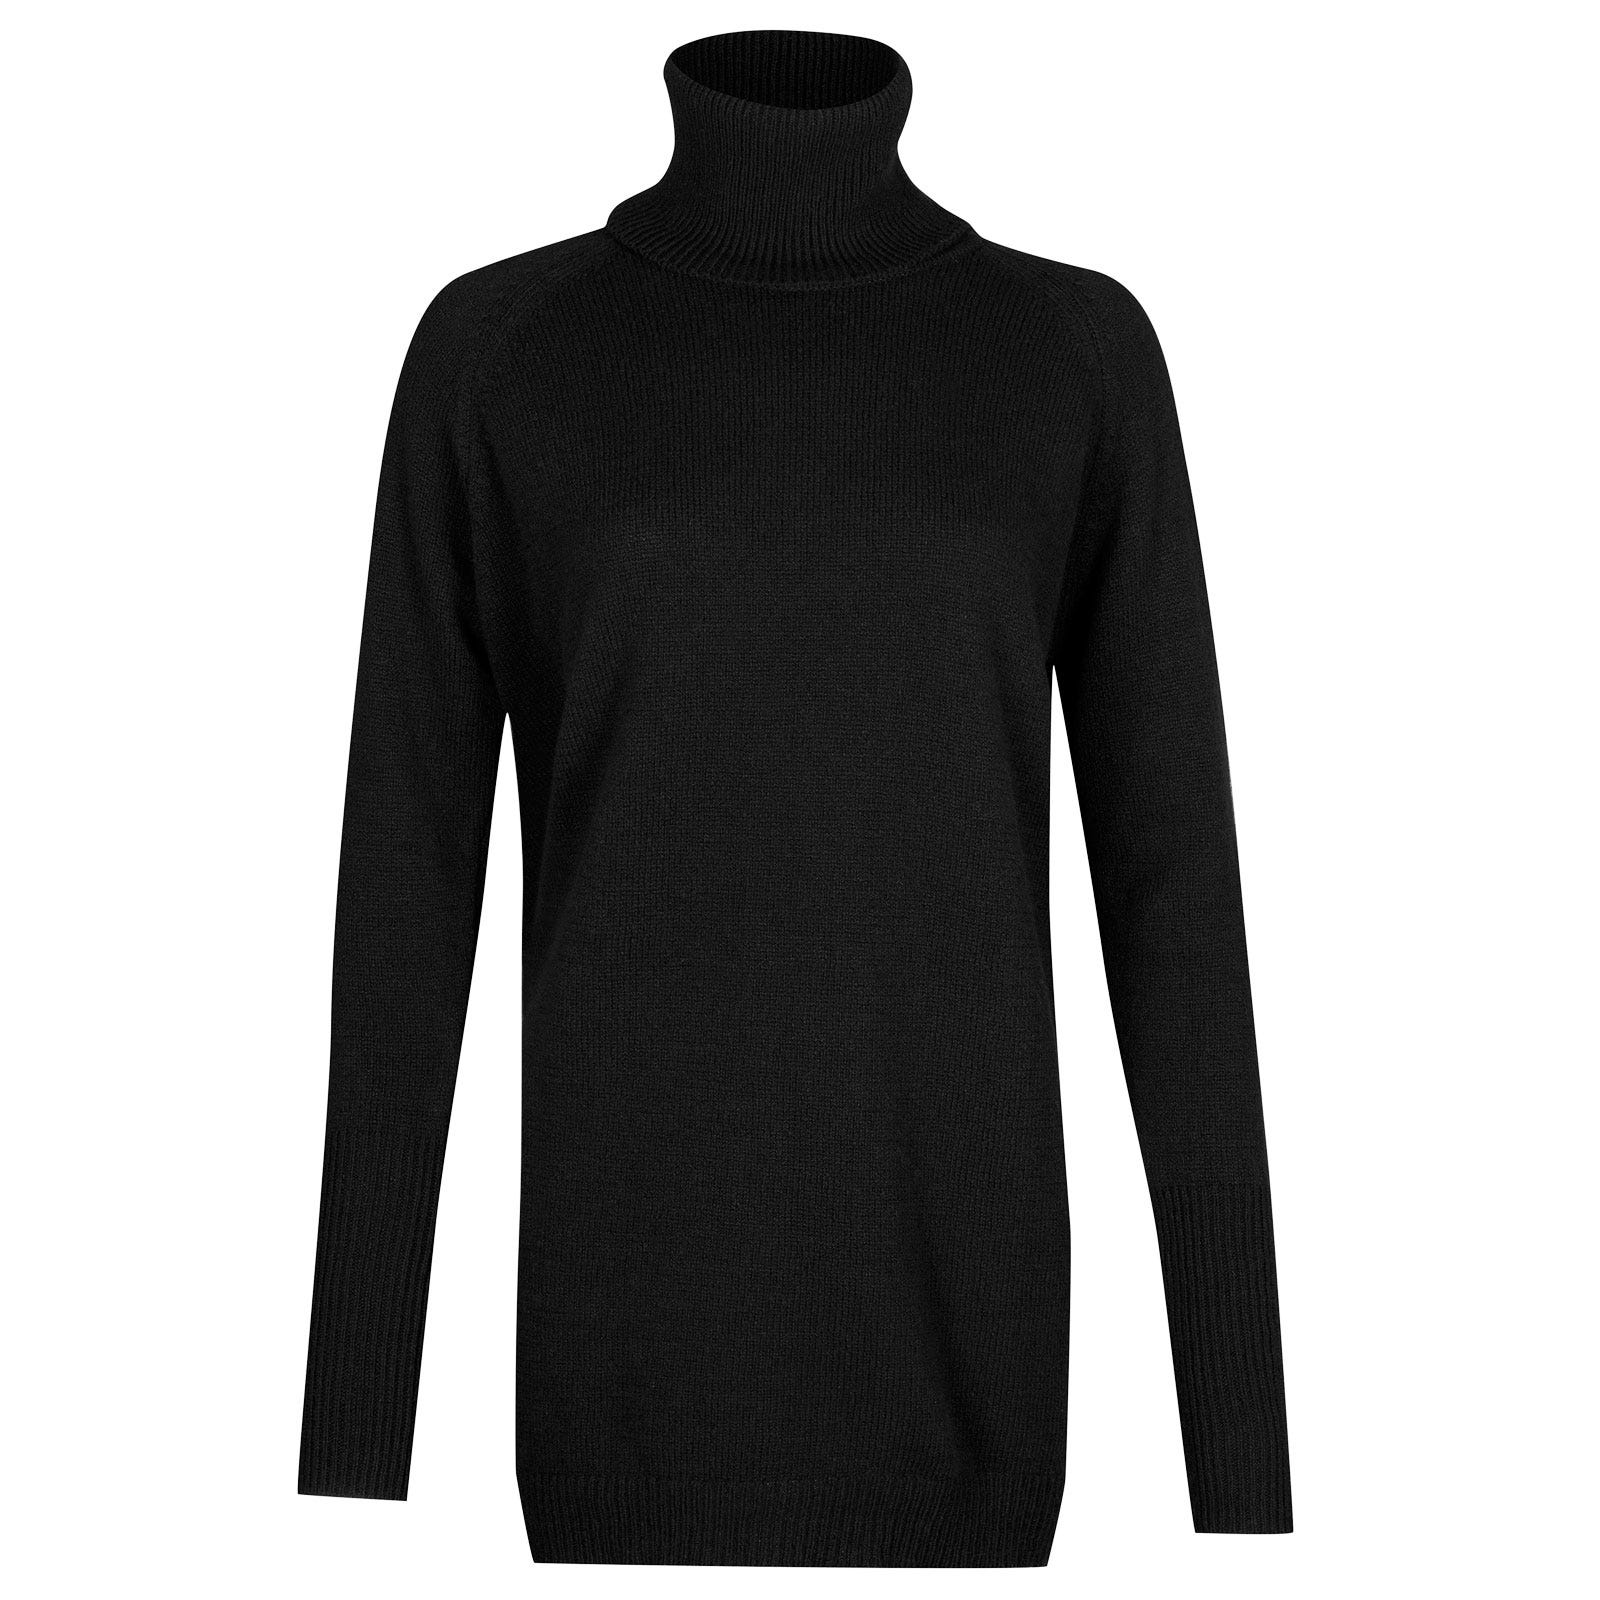 John Smedley beale Merino Wool & Cashmere Sweater in Black-M